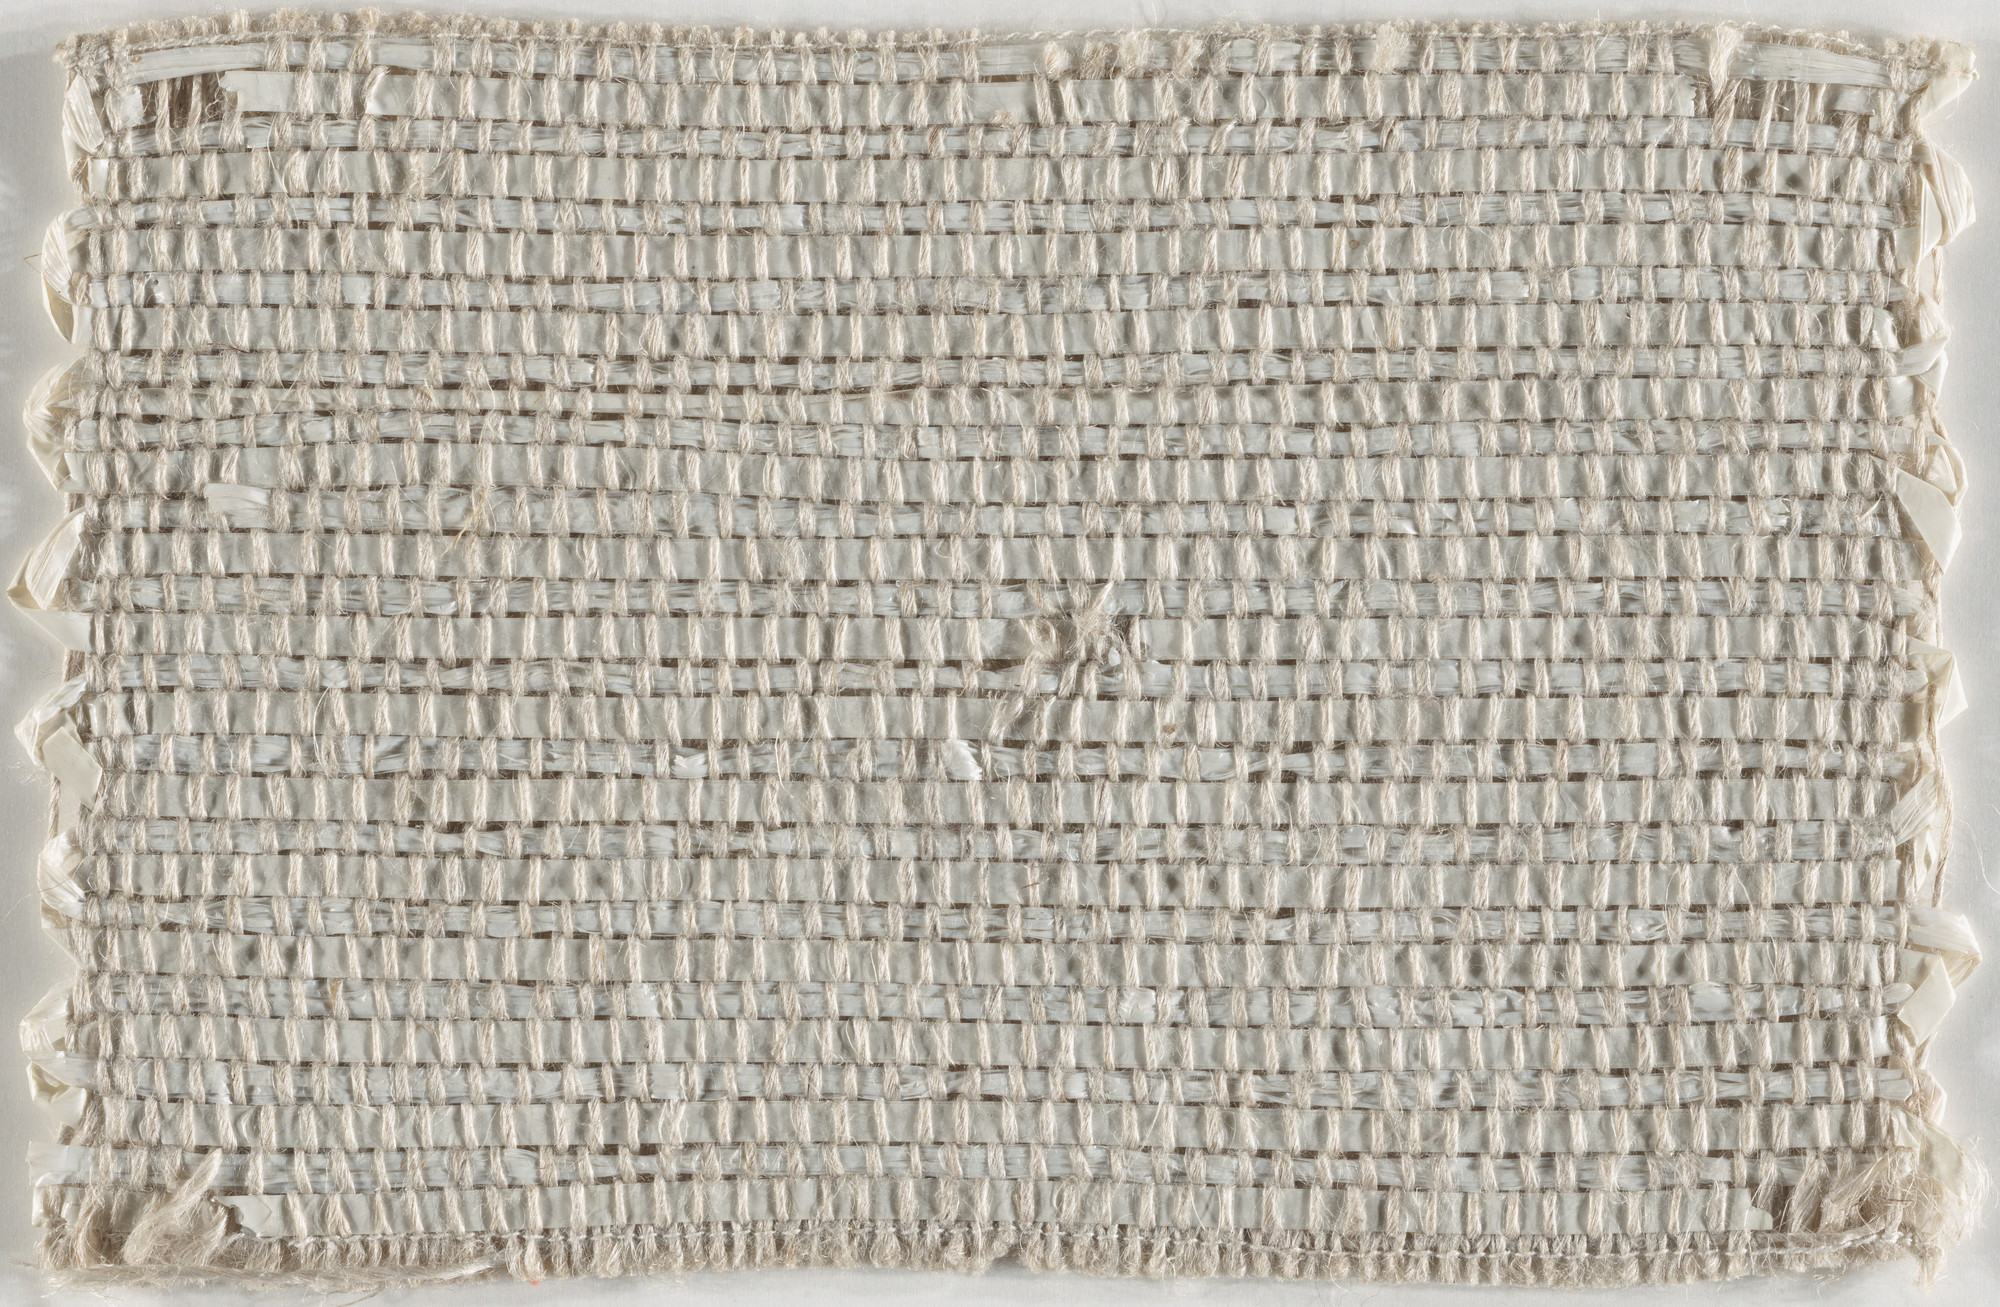 Anni Albers. Wall-Covering Sample. After 1933